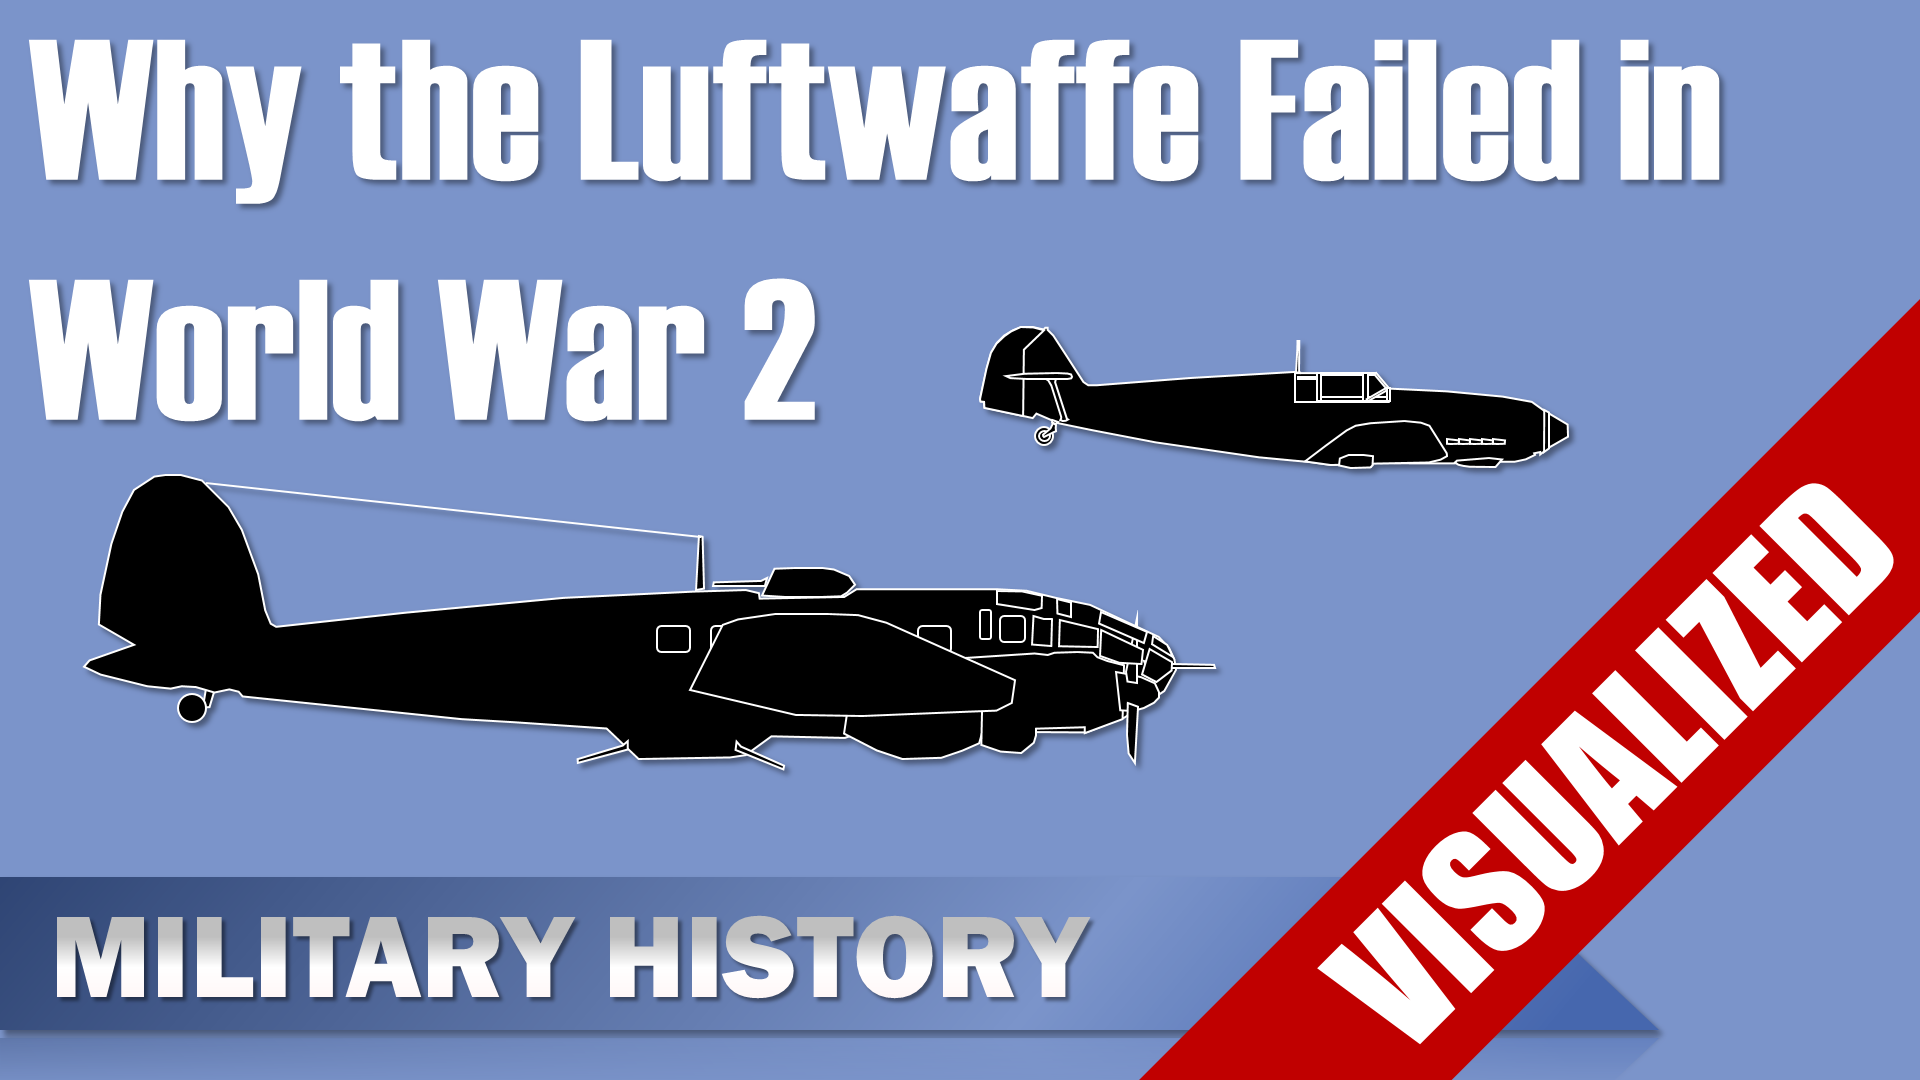 Why the Luftwaffe Failed in World War 2 – Failures, Shortcomings and Blunders